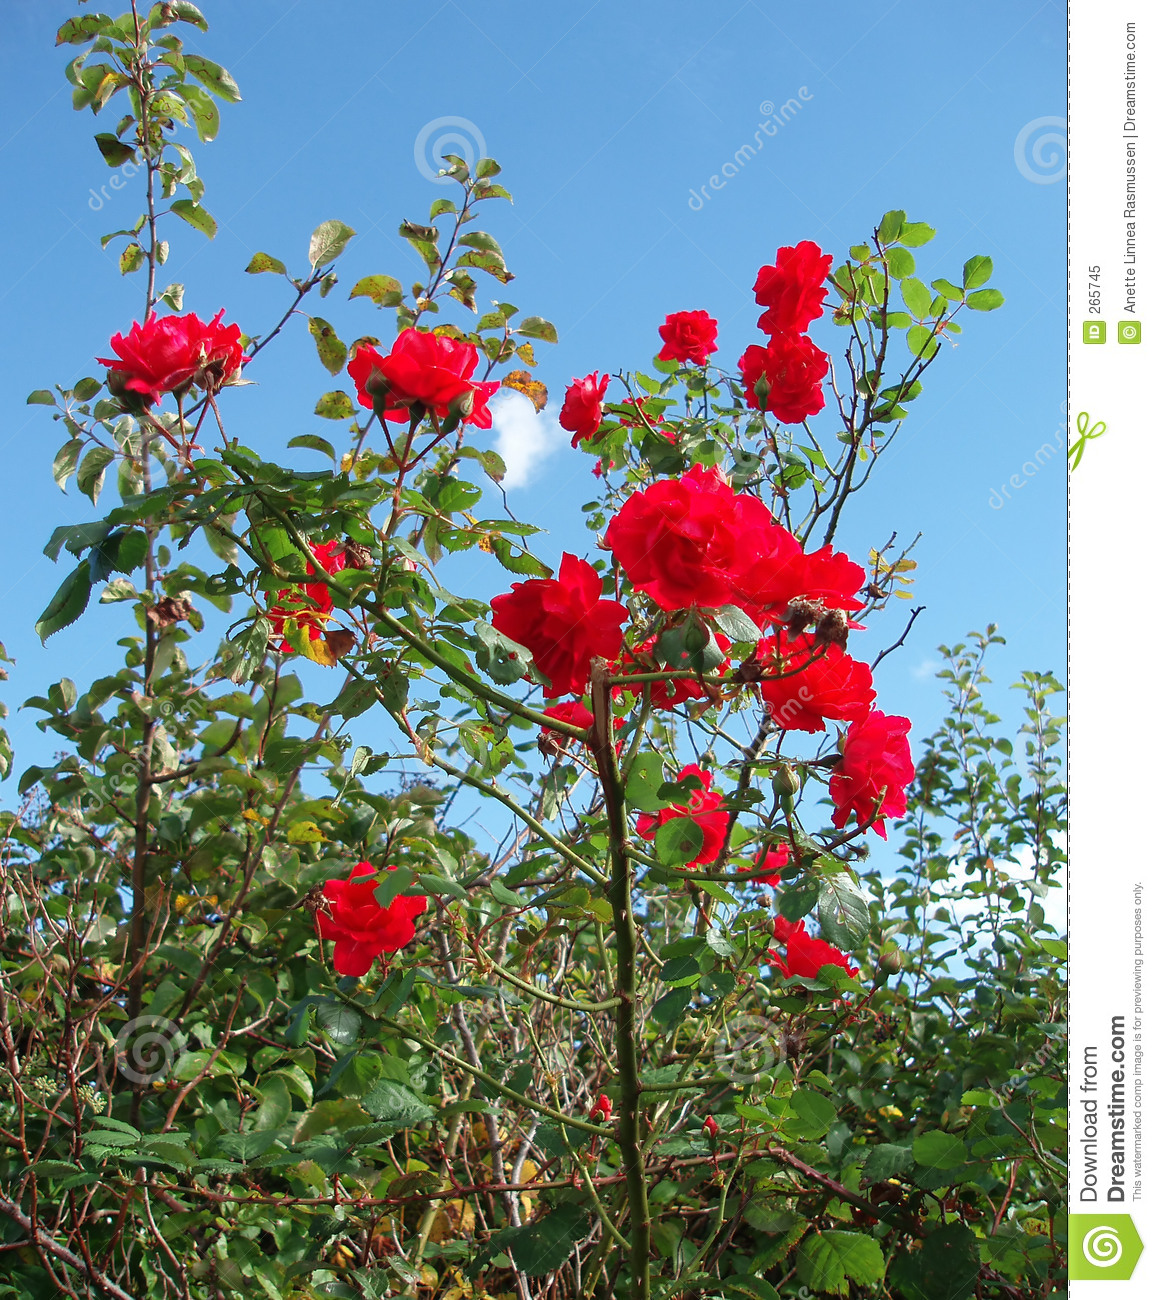 Red roses in wild nature